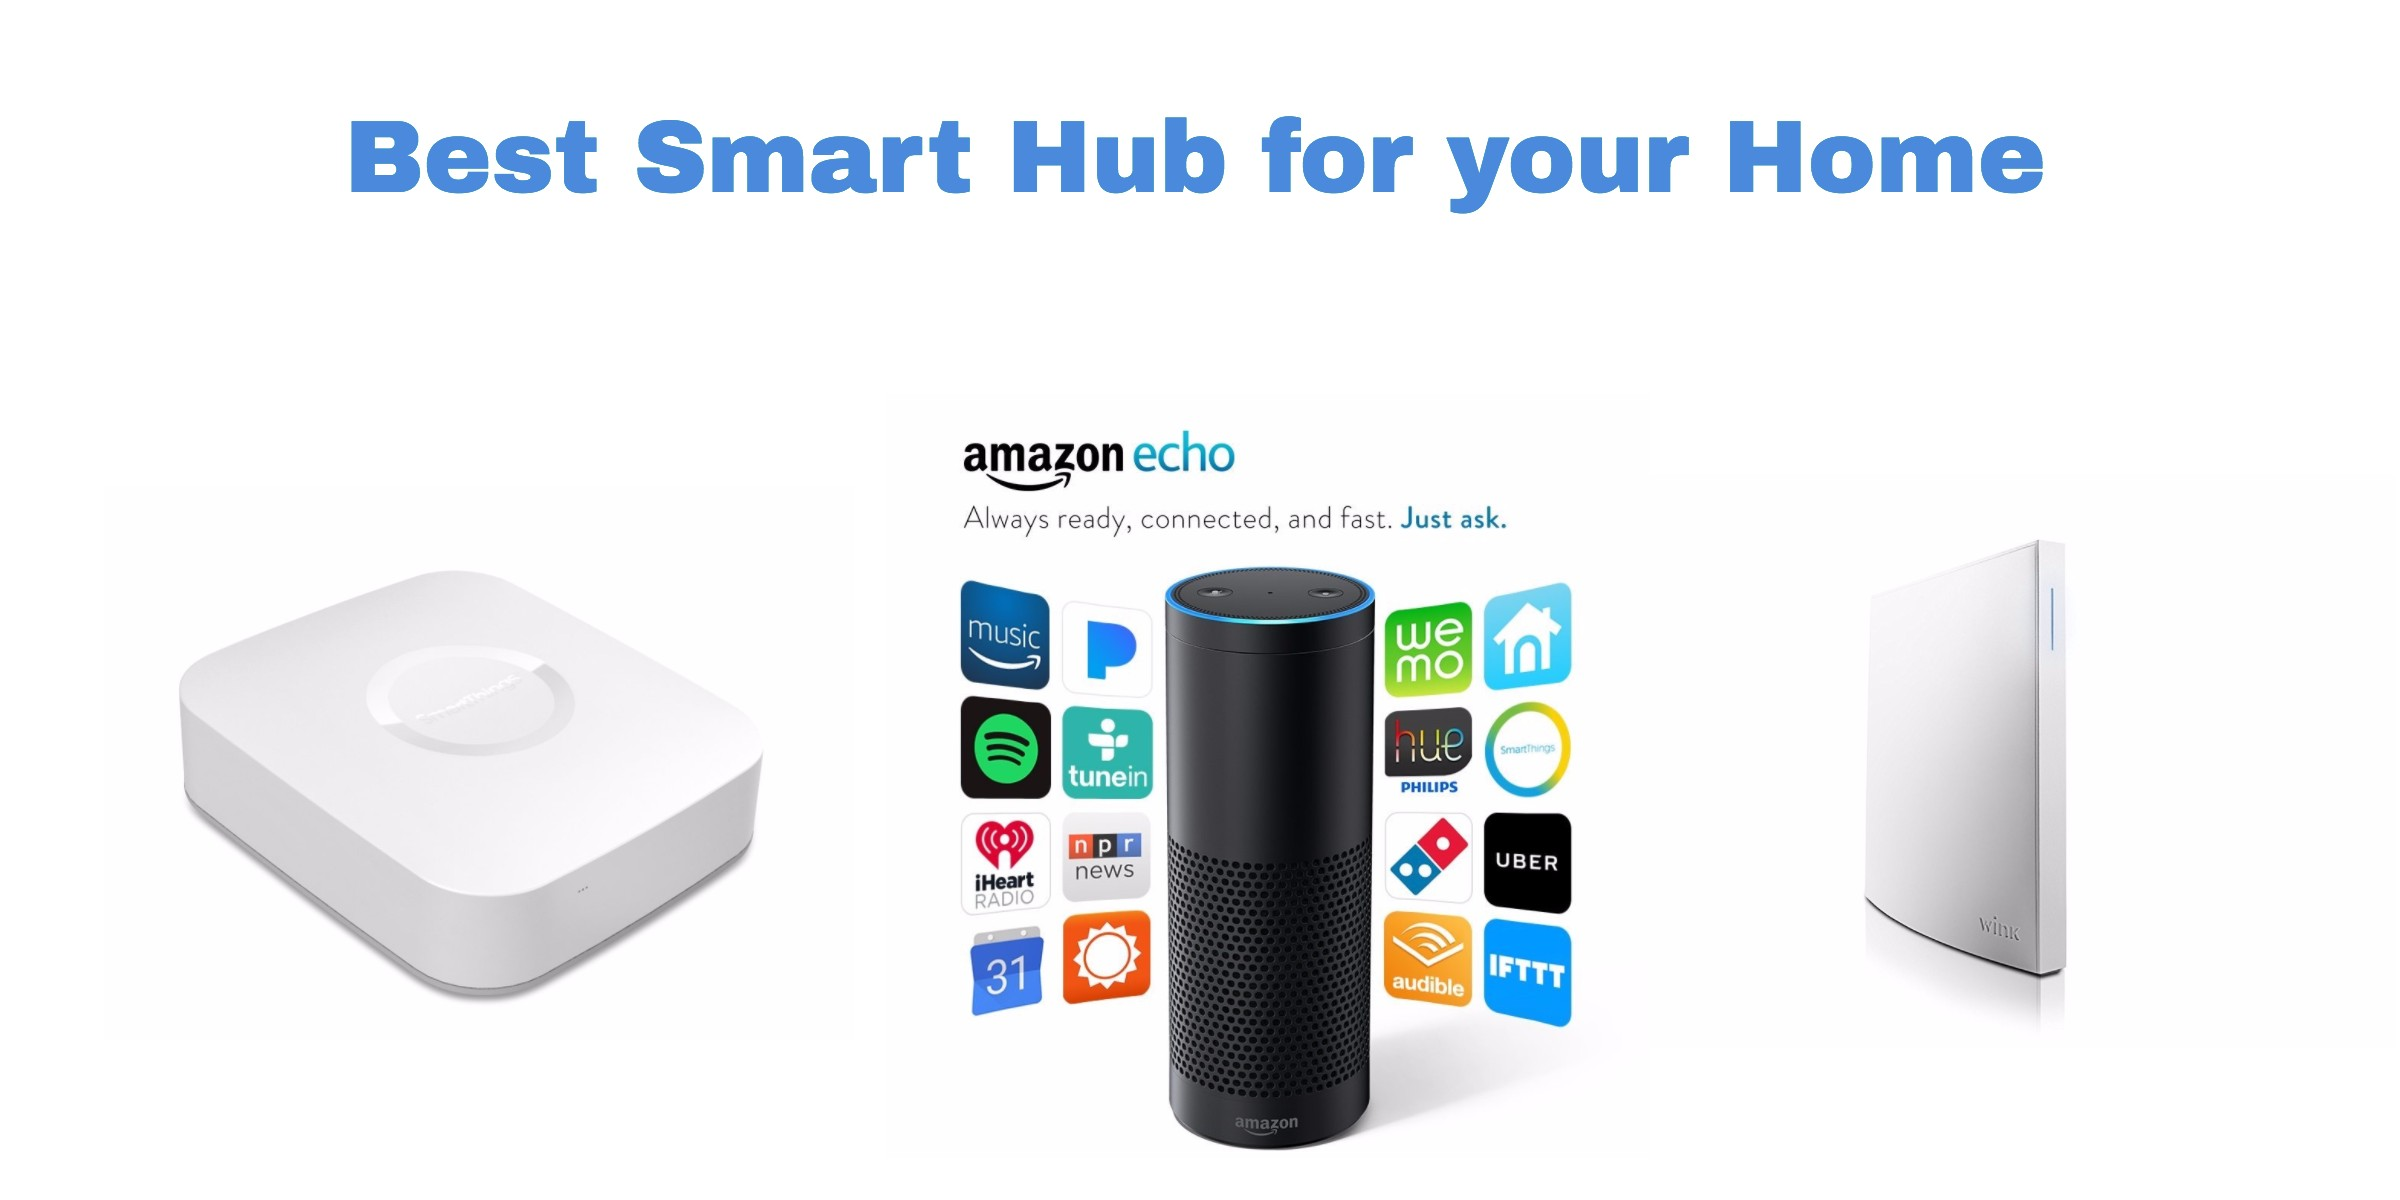 home automation Archives - Making a Smart Home